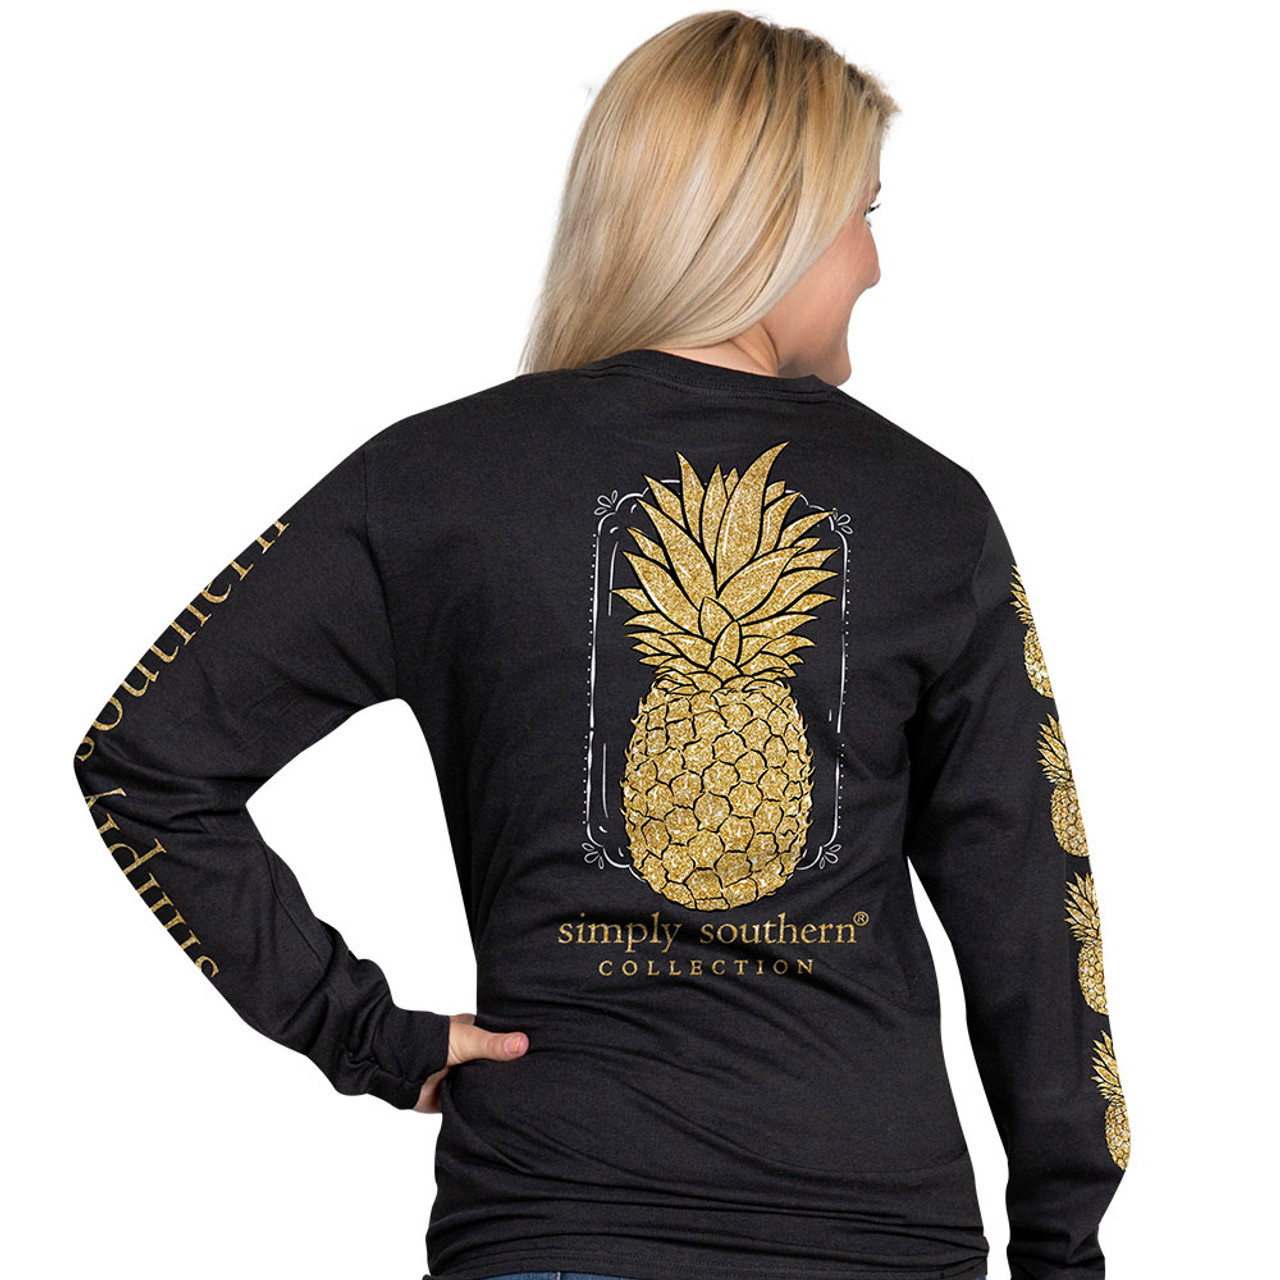 51bd3eb7555 Simply Southern LS Tee - Pineapple - Cordial Lee